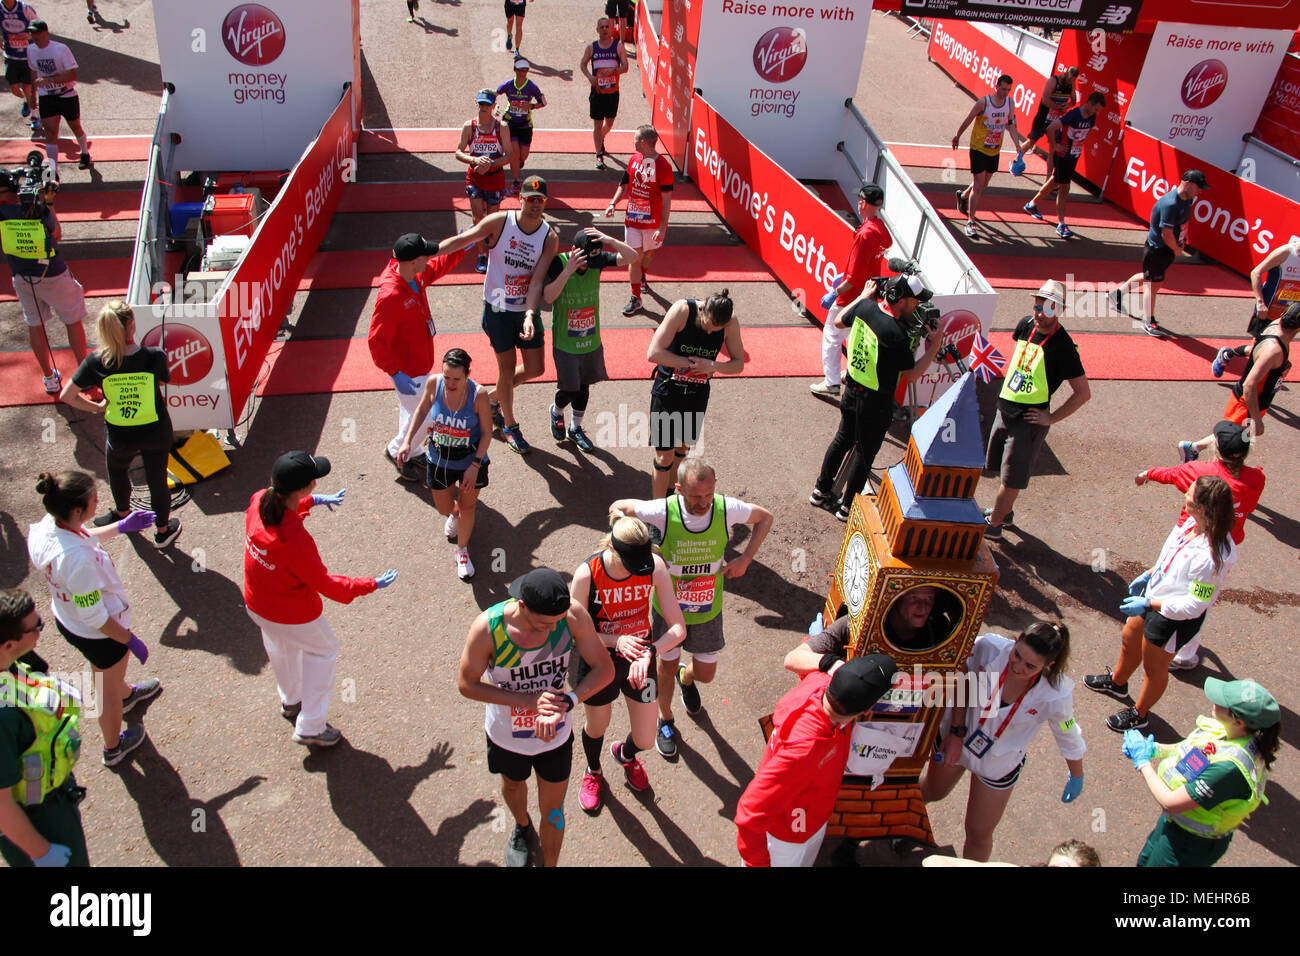 London, UK, 22 April 2018. Runners cross the finish line Credit: Alex Cavendish/Alamy Live News - Stock Image